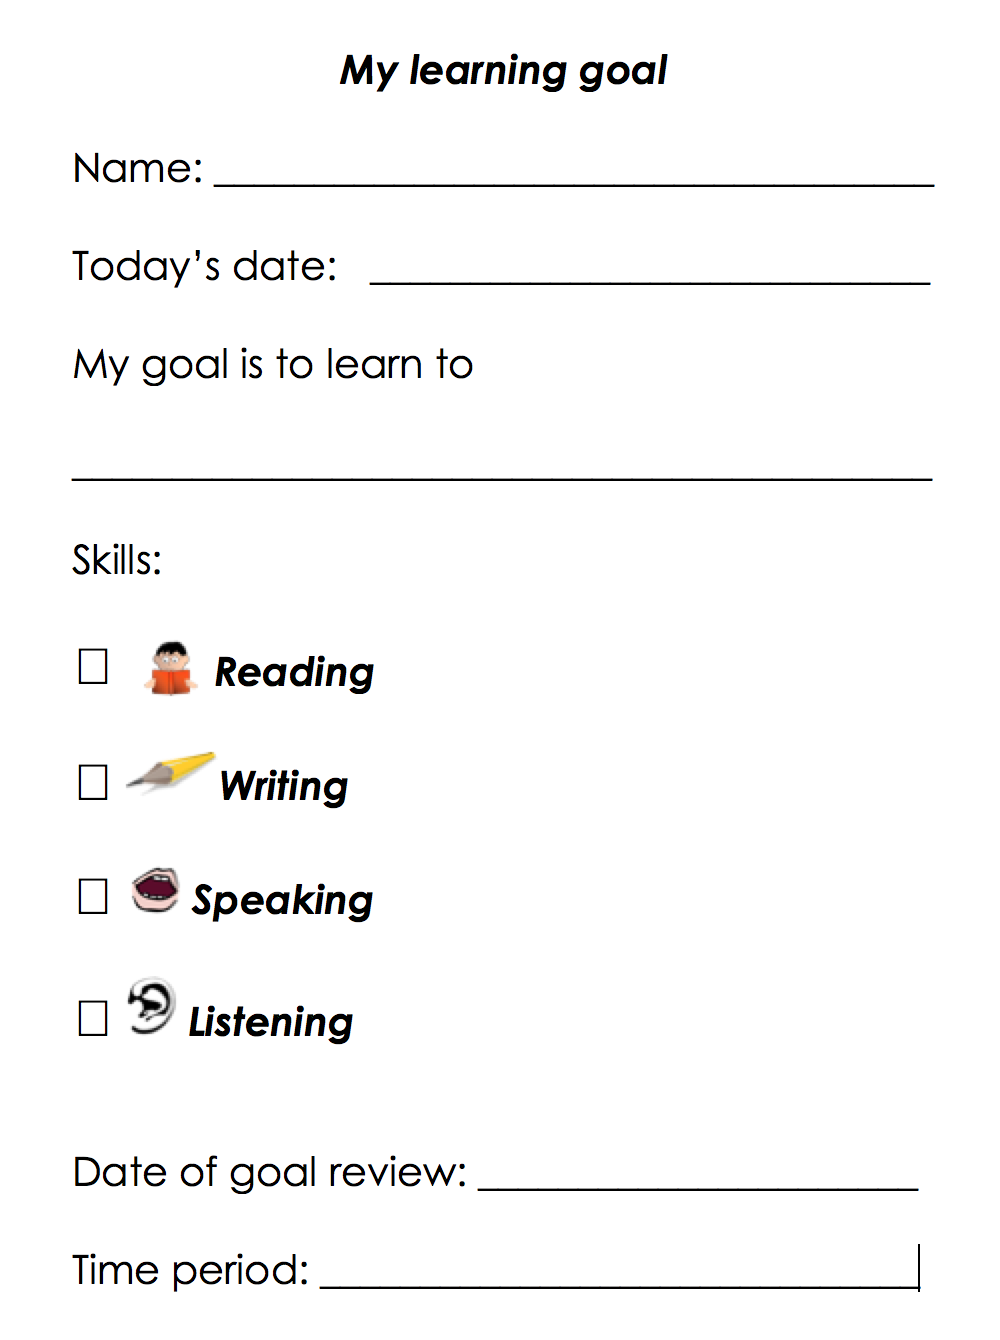 Worksheets Goal Worksheet For Students teach2learnesl goal setting for learning management in adult esl literacy